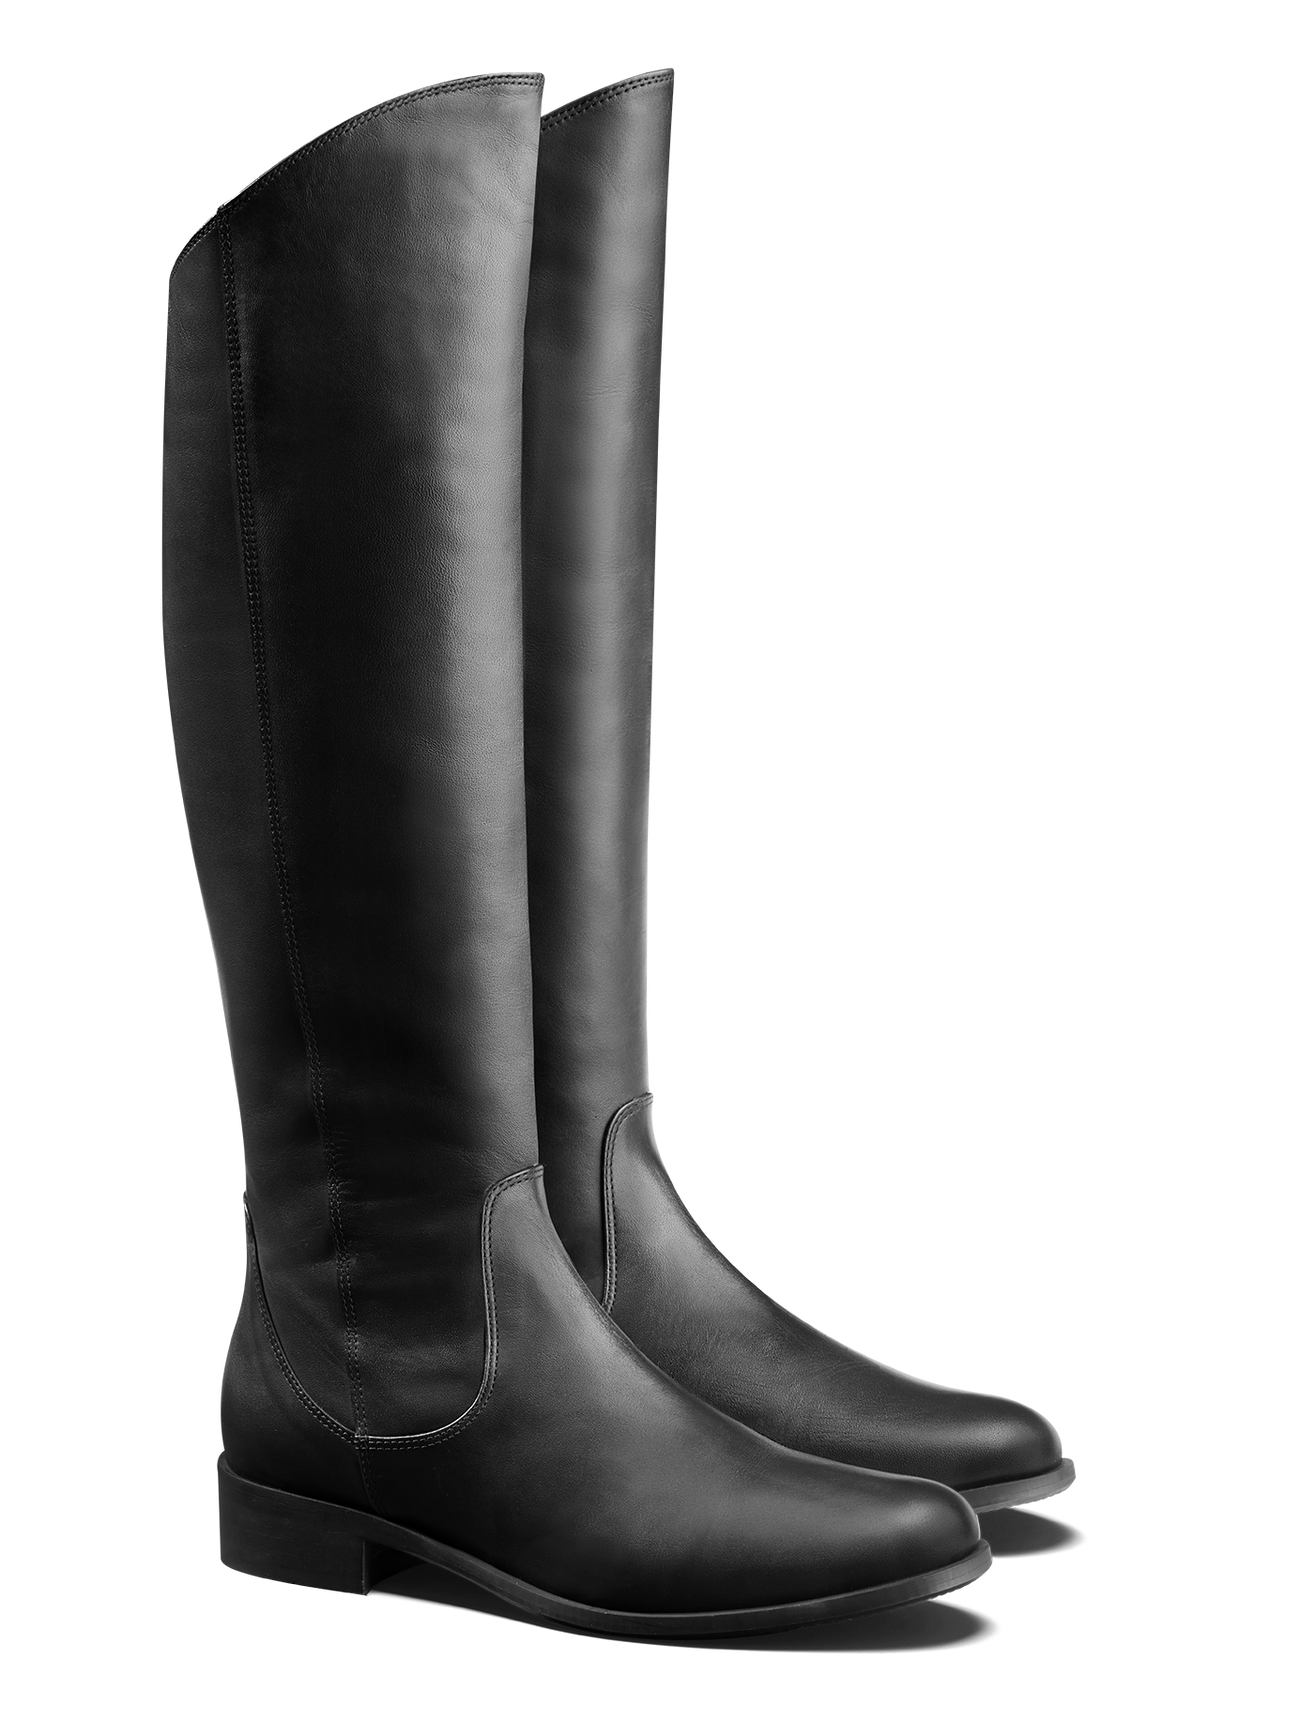 Huntsman, a knee high, fashion riding boot in black leather with an asymmetric top line.